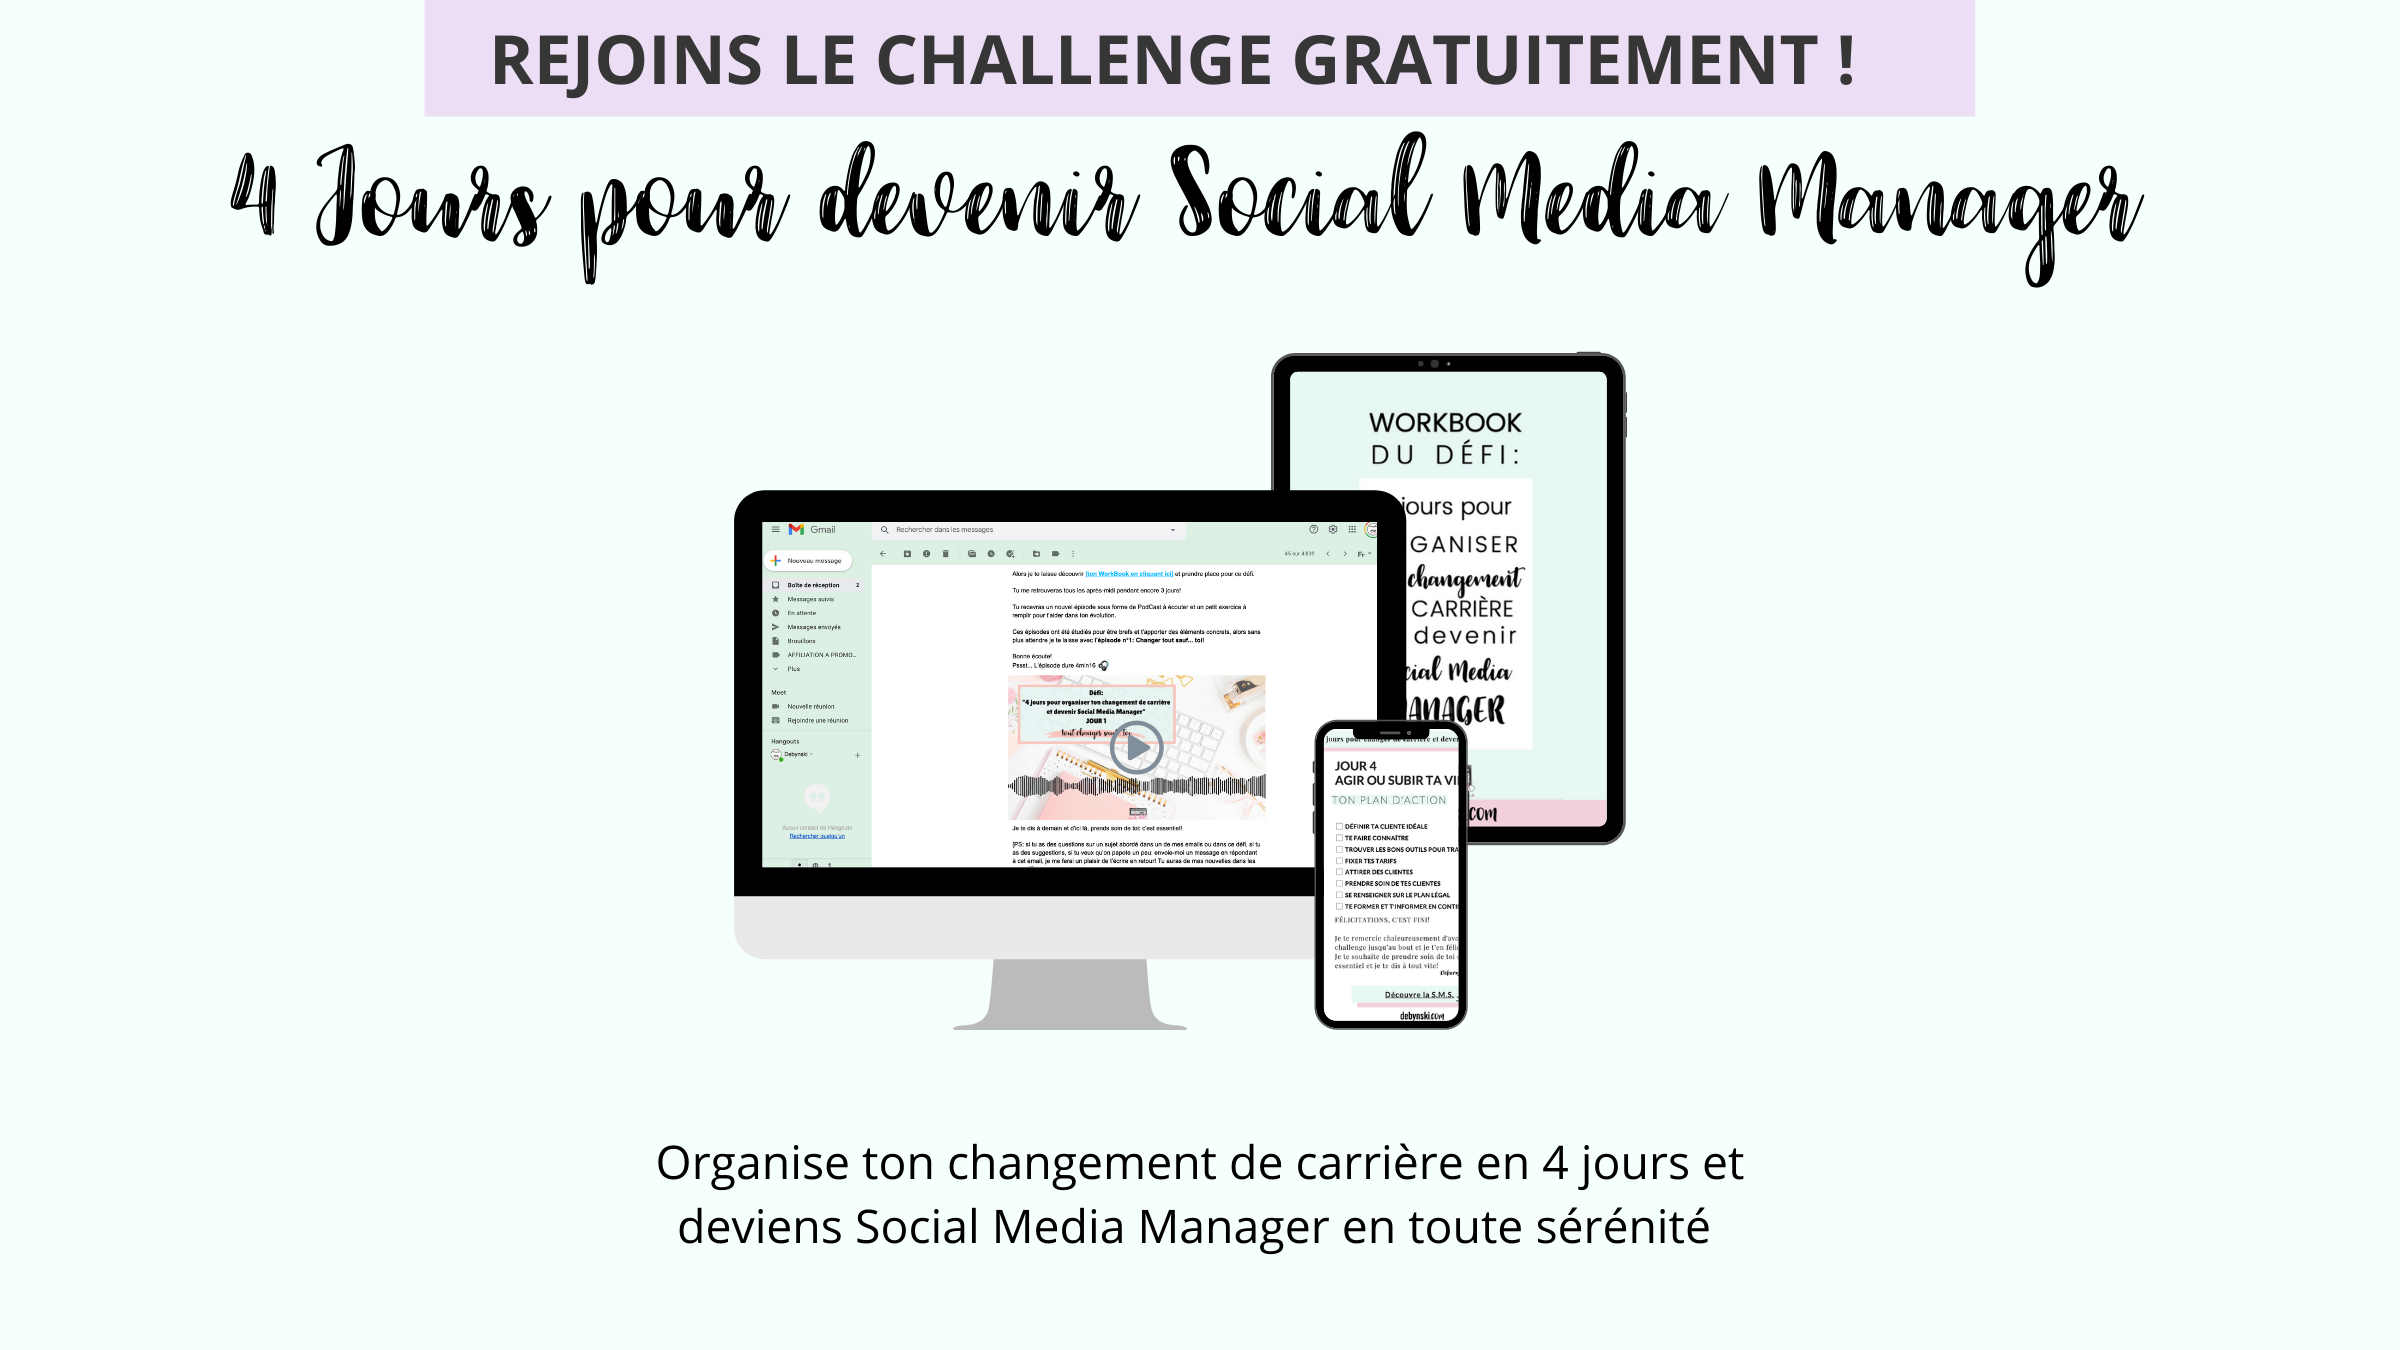 challenge 4 jours pour devenir social media manager by debynski